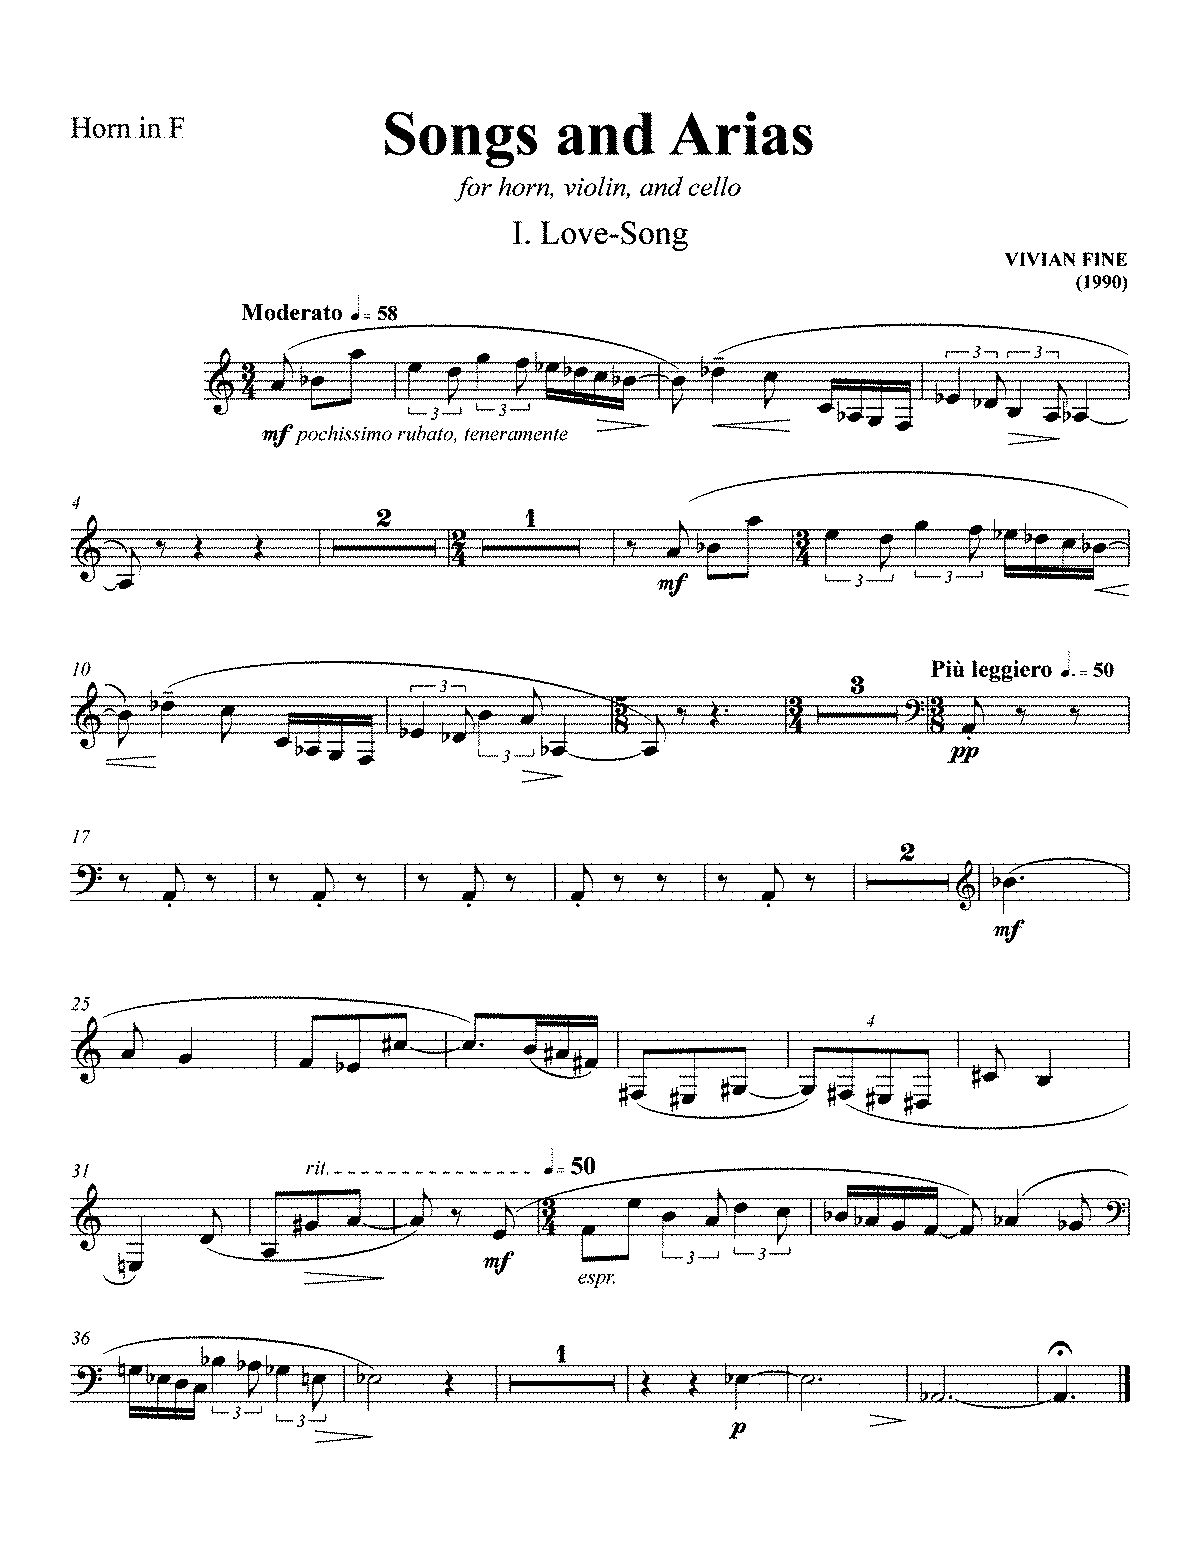 PMLP213527-Songs and Arias horn in F.pdf